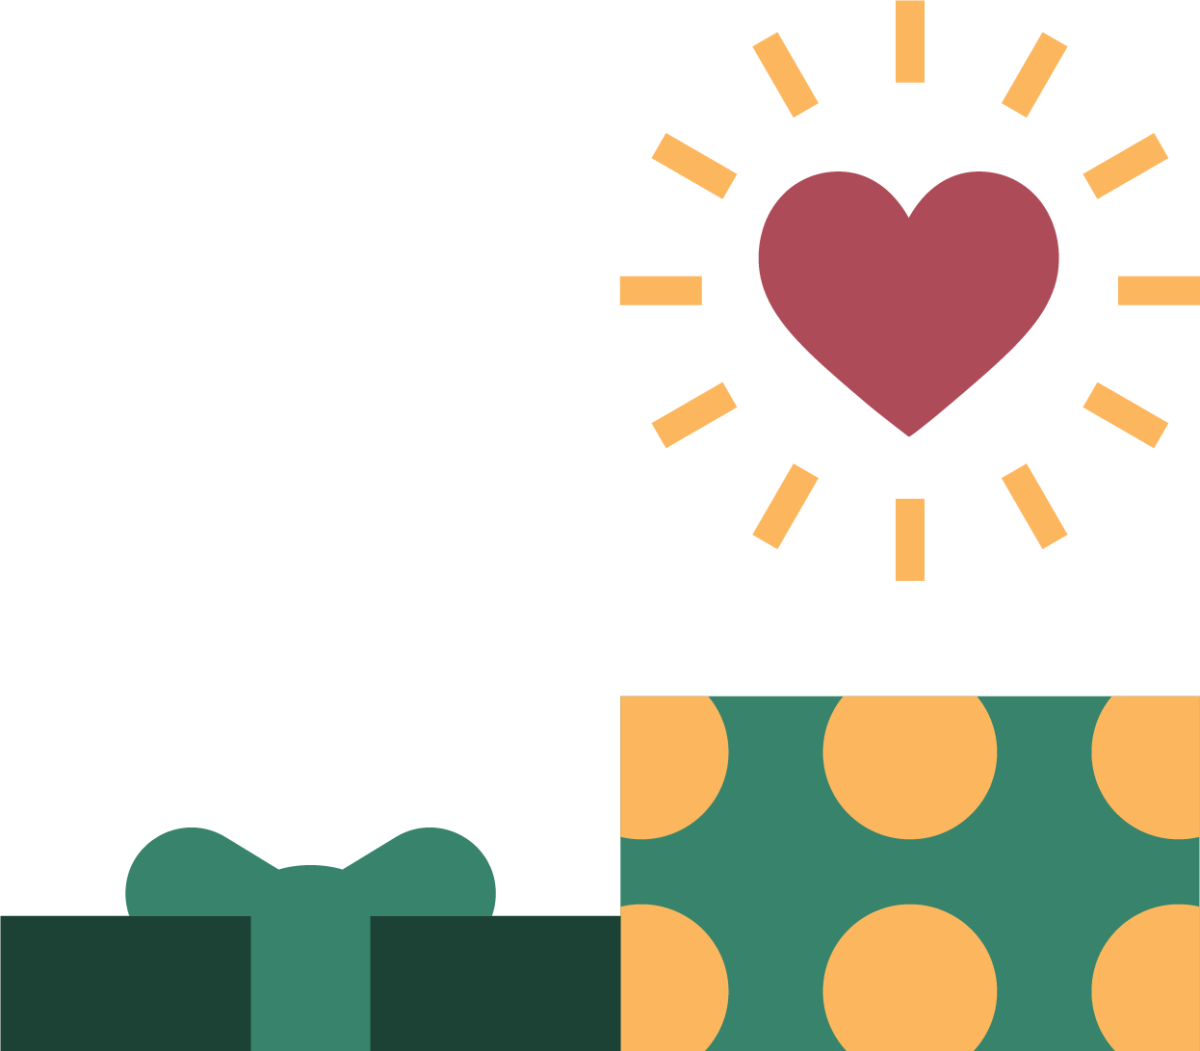 gifts-donations-heart icon